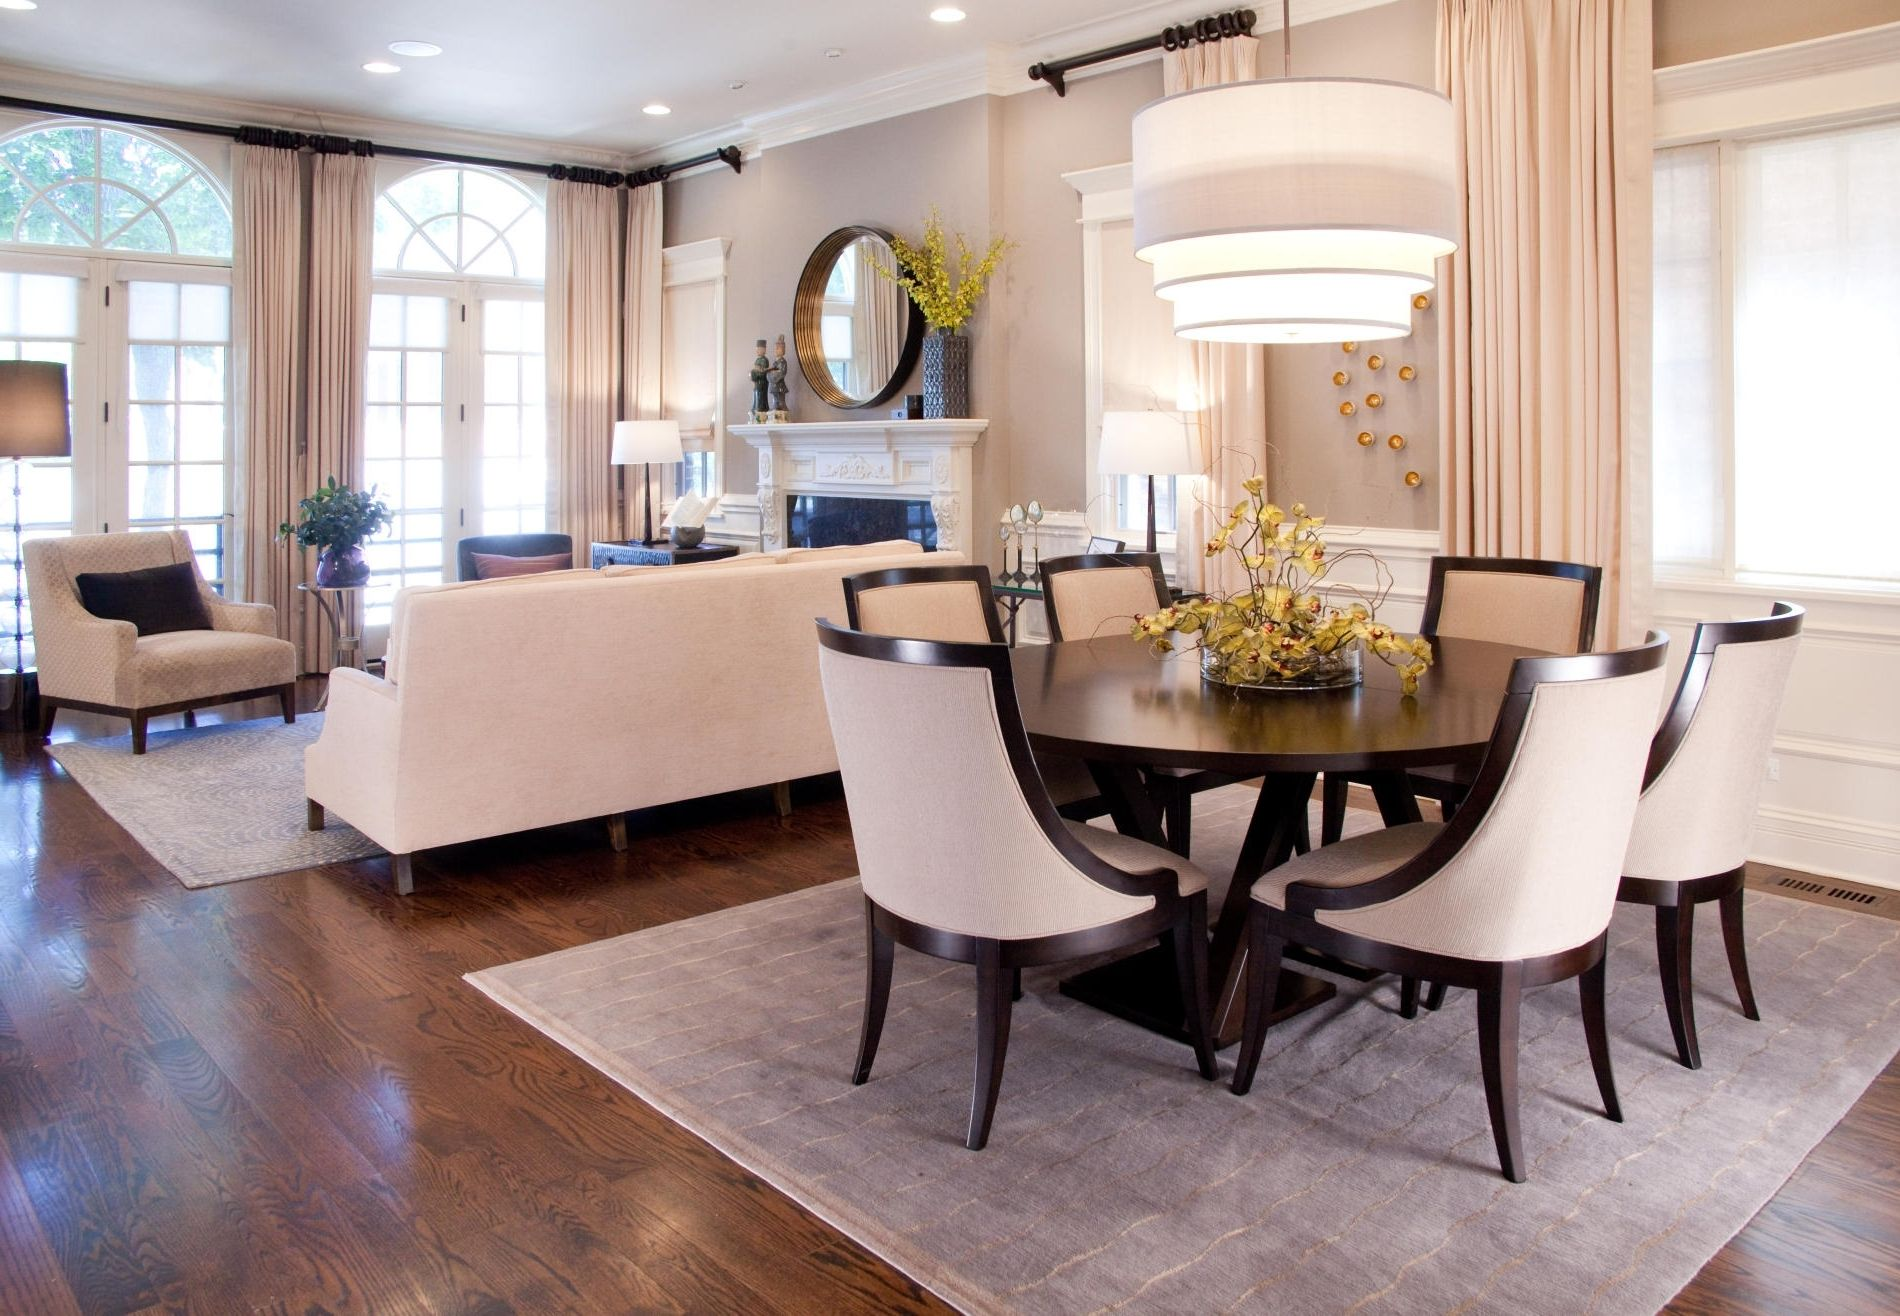 Dining-table. +110 Unique Living Room Furniture Pieces That Amaze Everyone